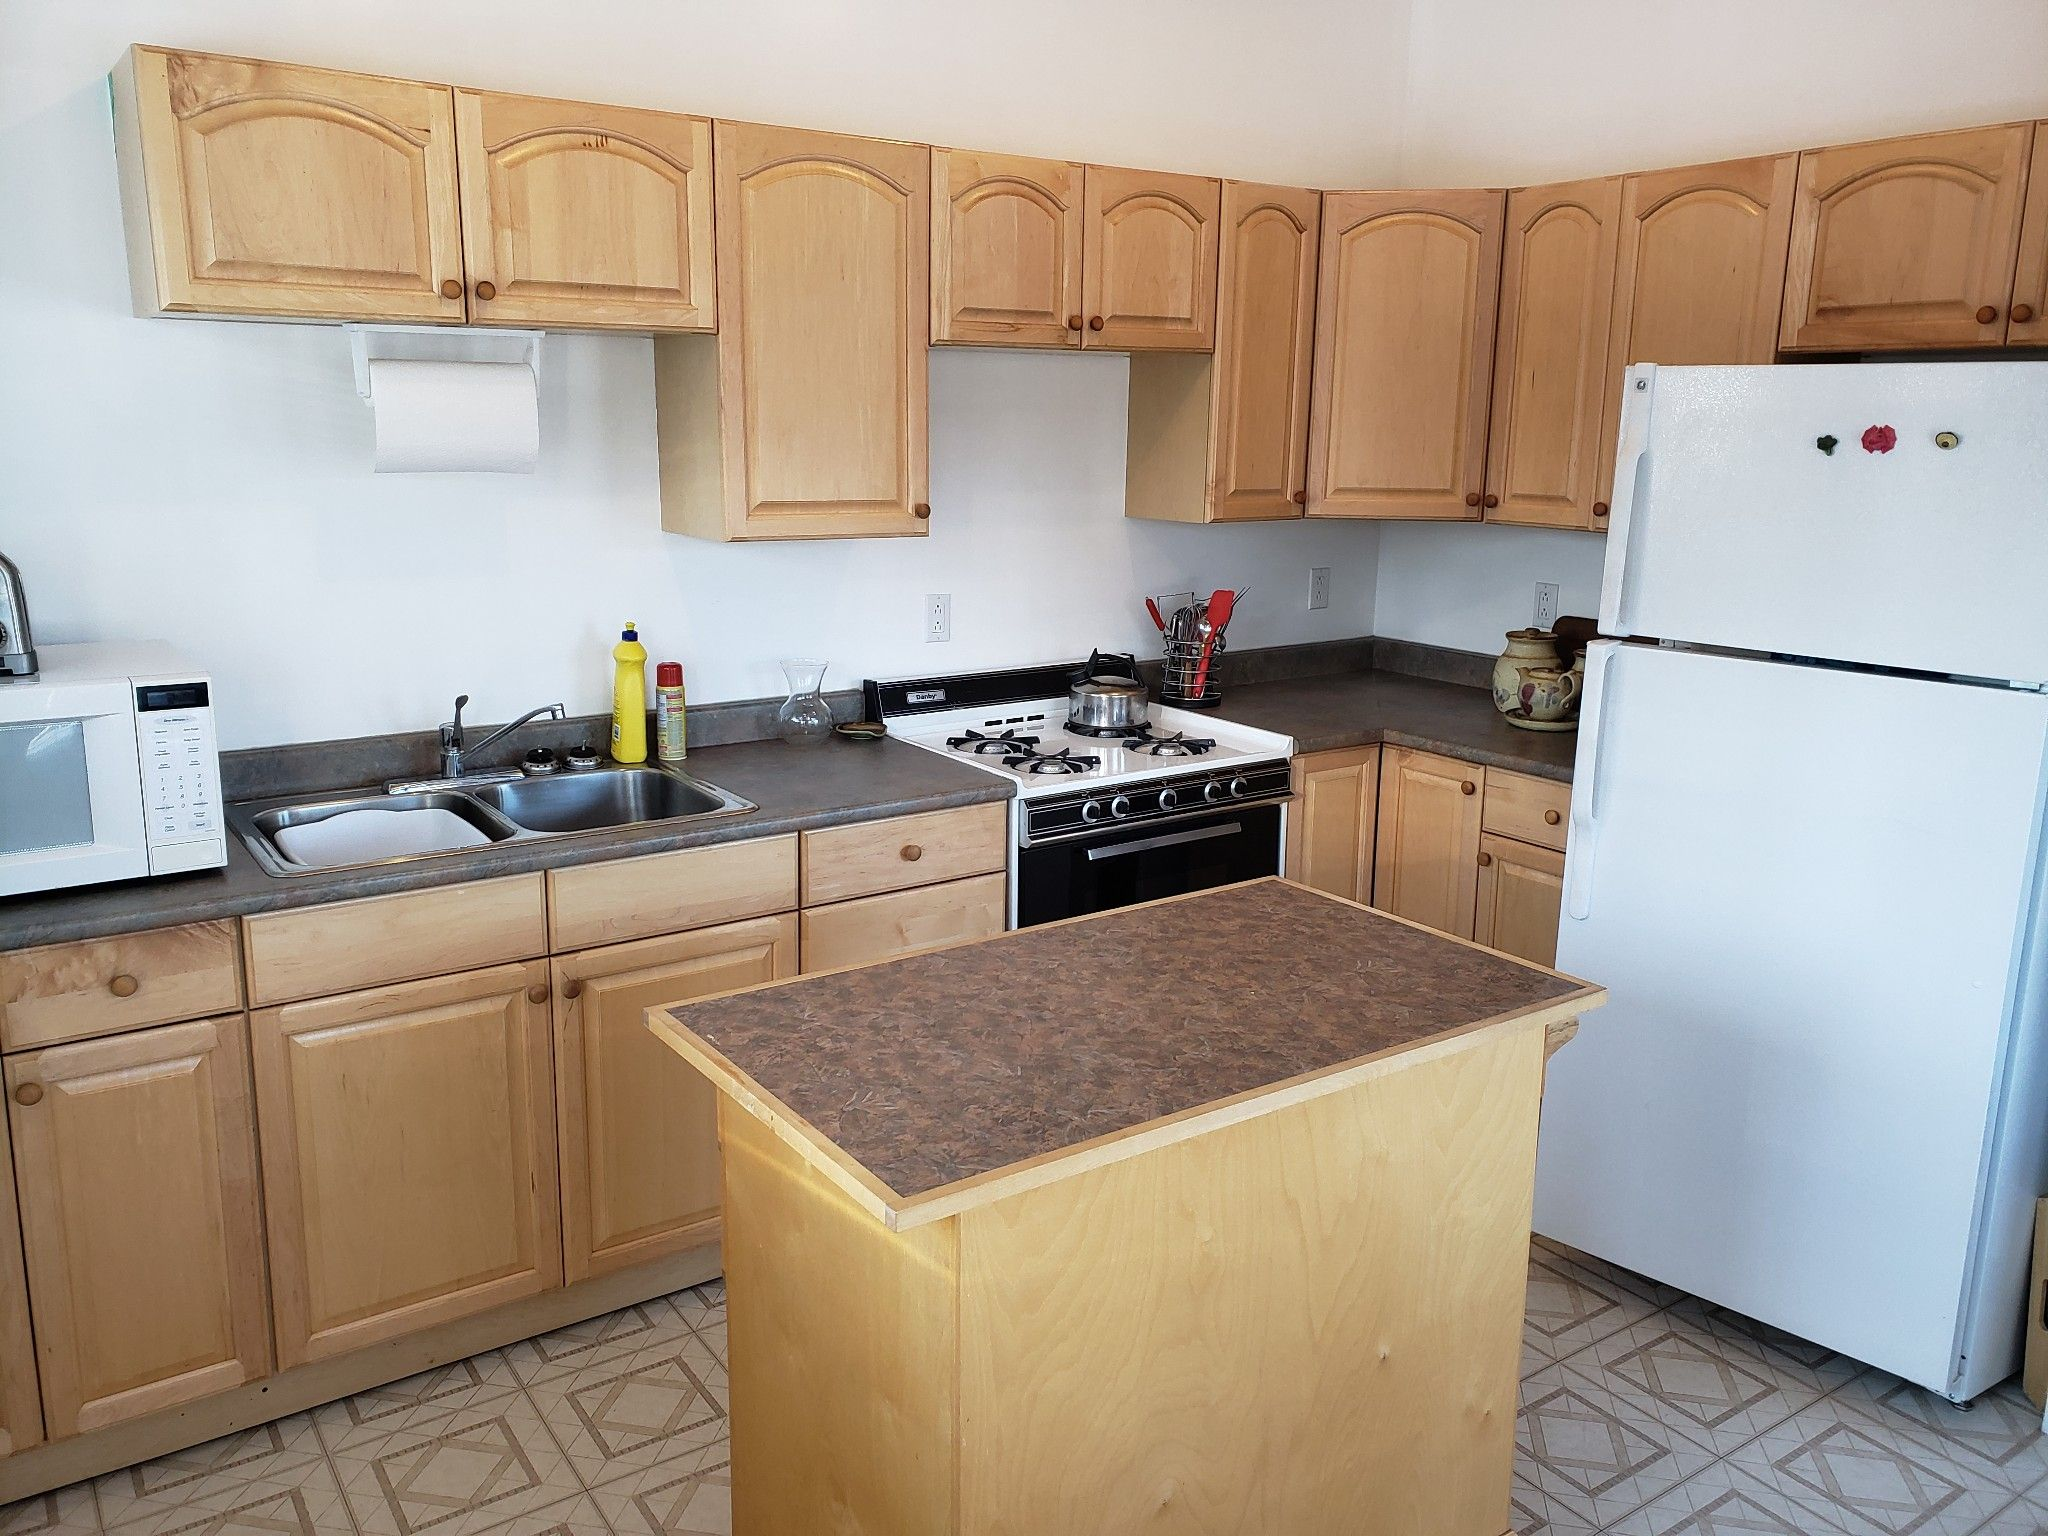 Photo 5: Photos: 4789 Atwater Road in : Logan Lake House for sale (Kamloops)  : MLS®# 157075